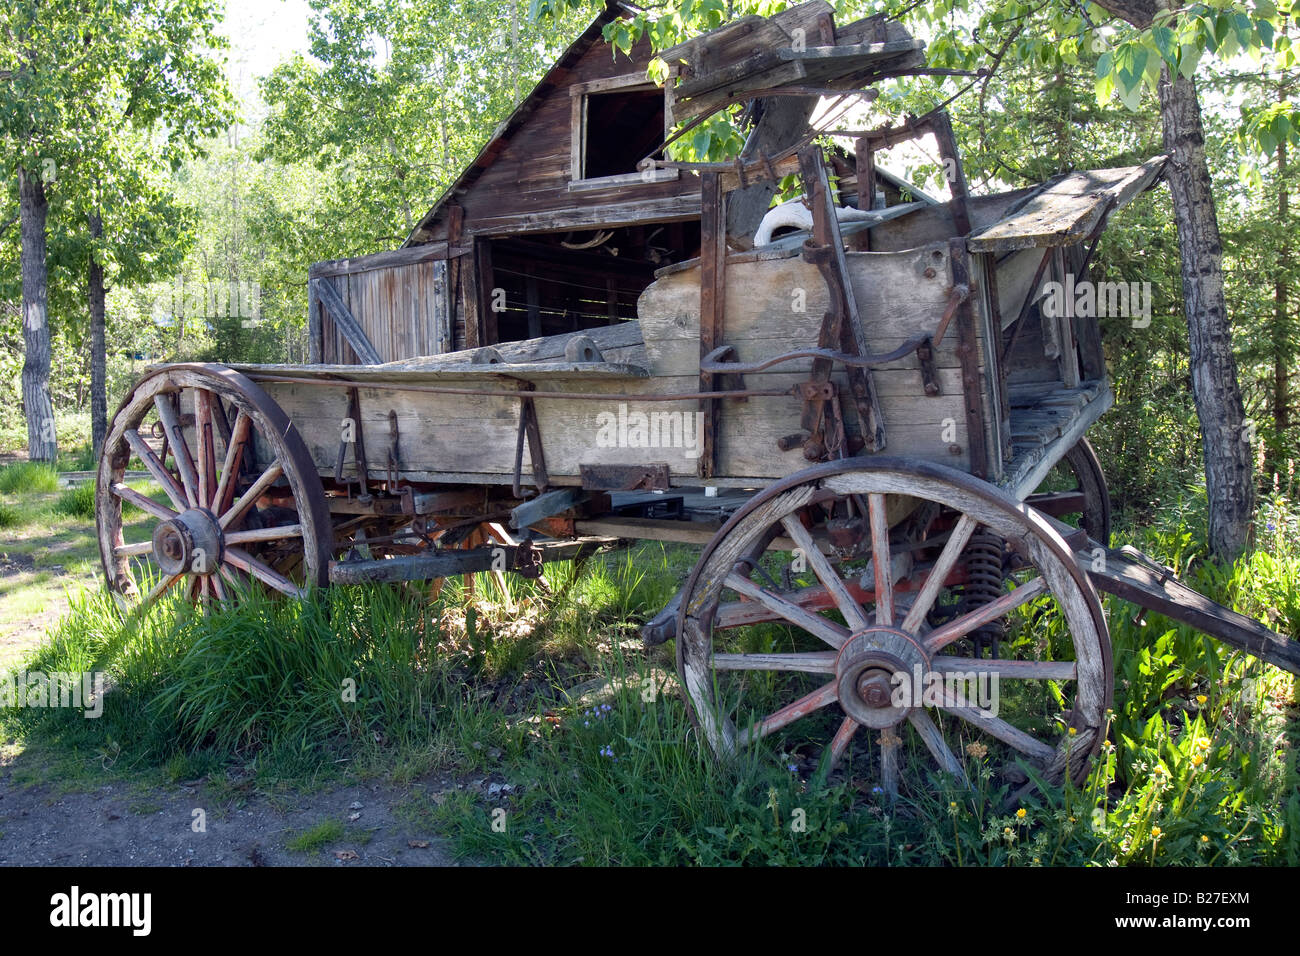 Old wagon in McCarthy, Alaska. - Stock Image